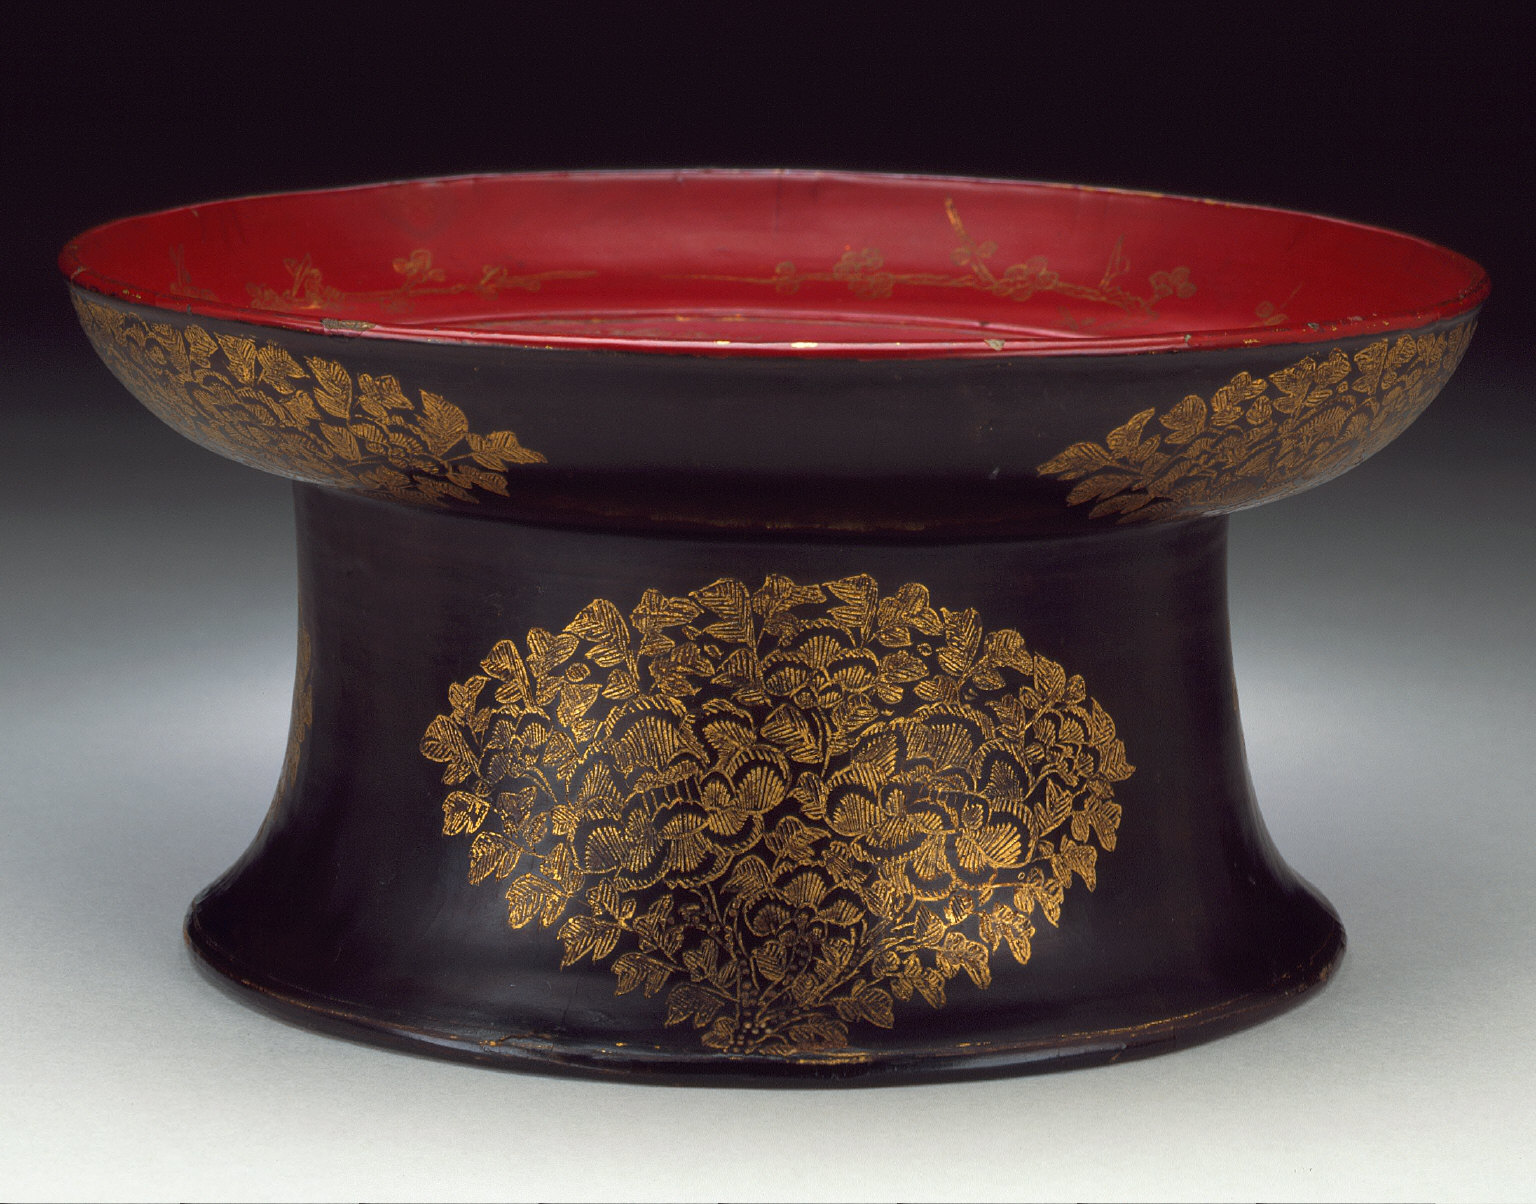 Tray on a High Foot with Camellias and Plum Blossoms